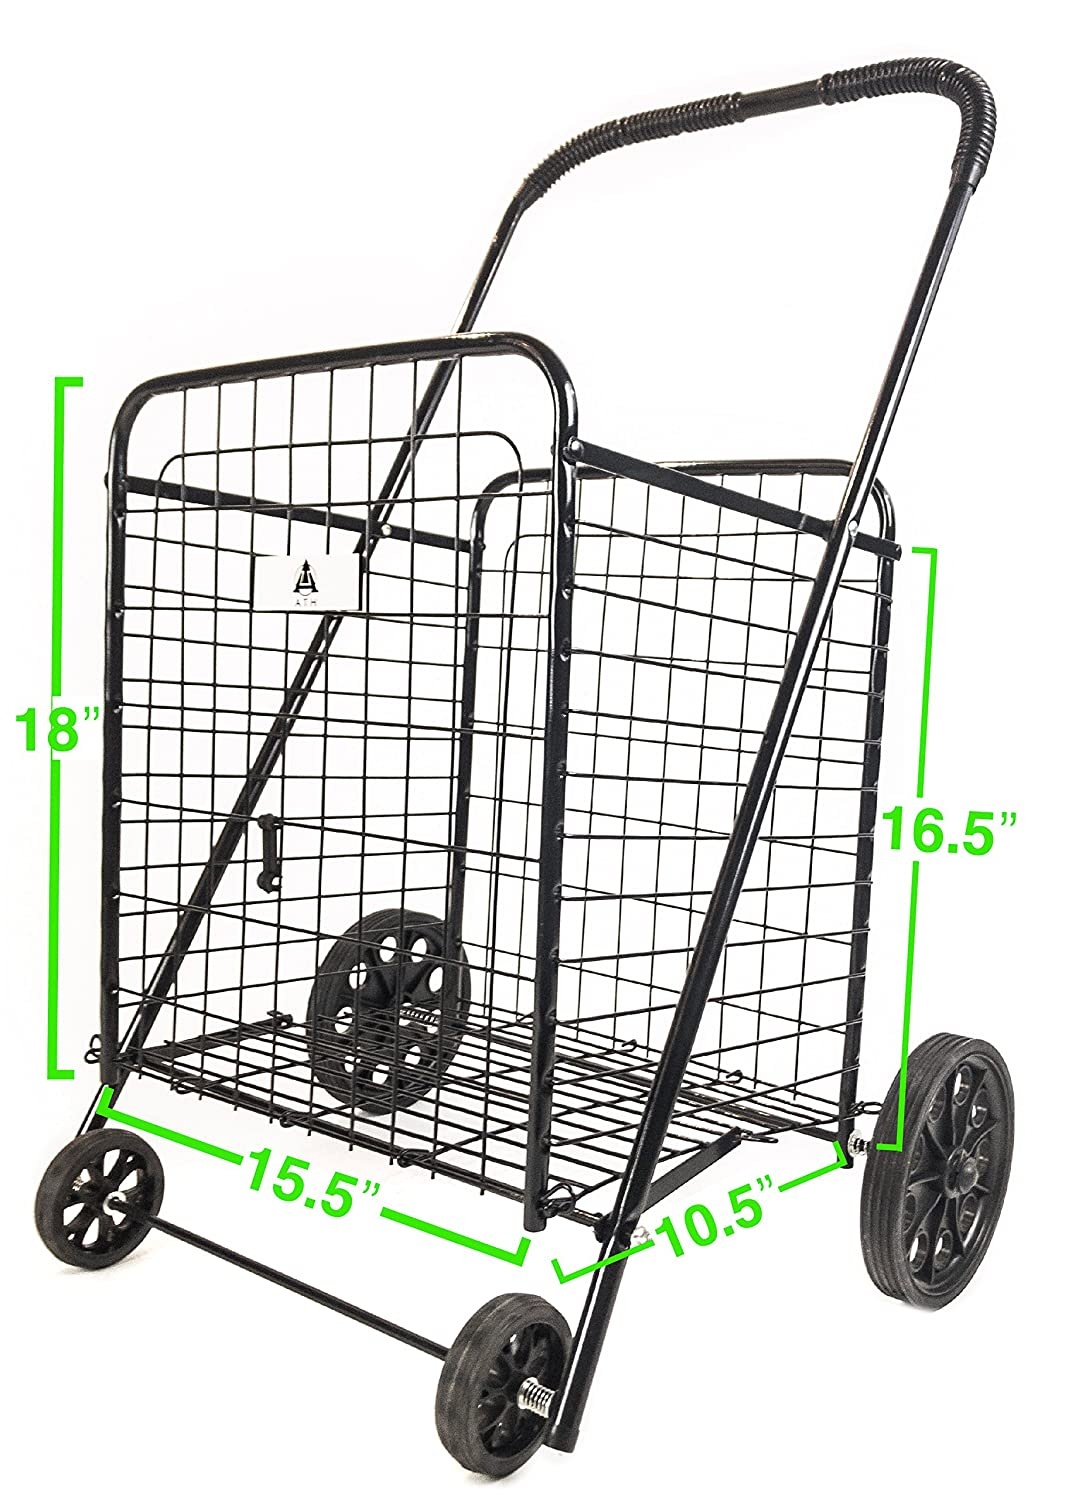 Toys Blue Groceries Stowable Folding Heavy Duty Cart with Metal Frame Wheels For Haul Laundry Sports Equipment ATH Small Deluxe Rolling Utility//Shopping Cart